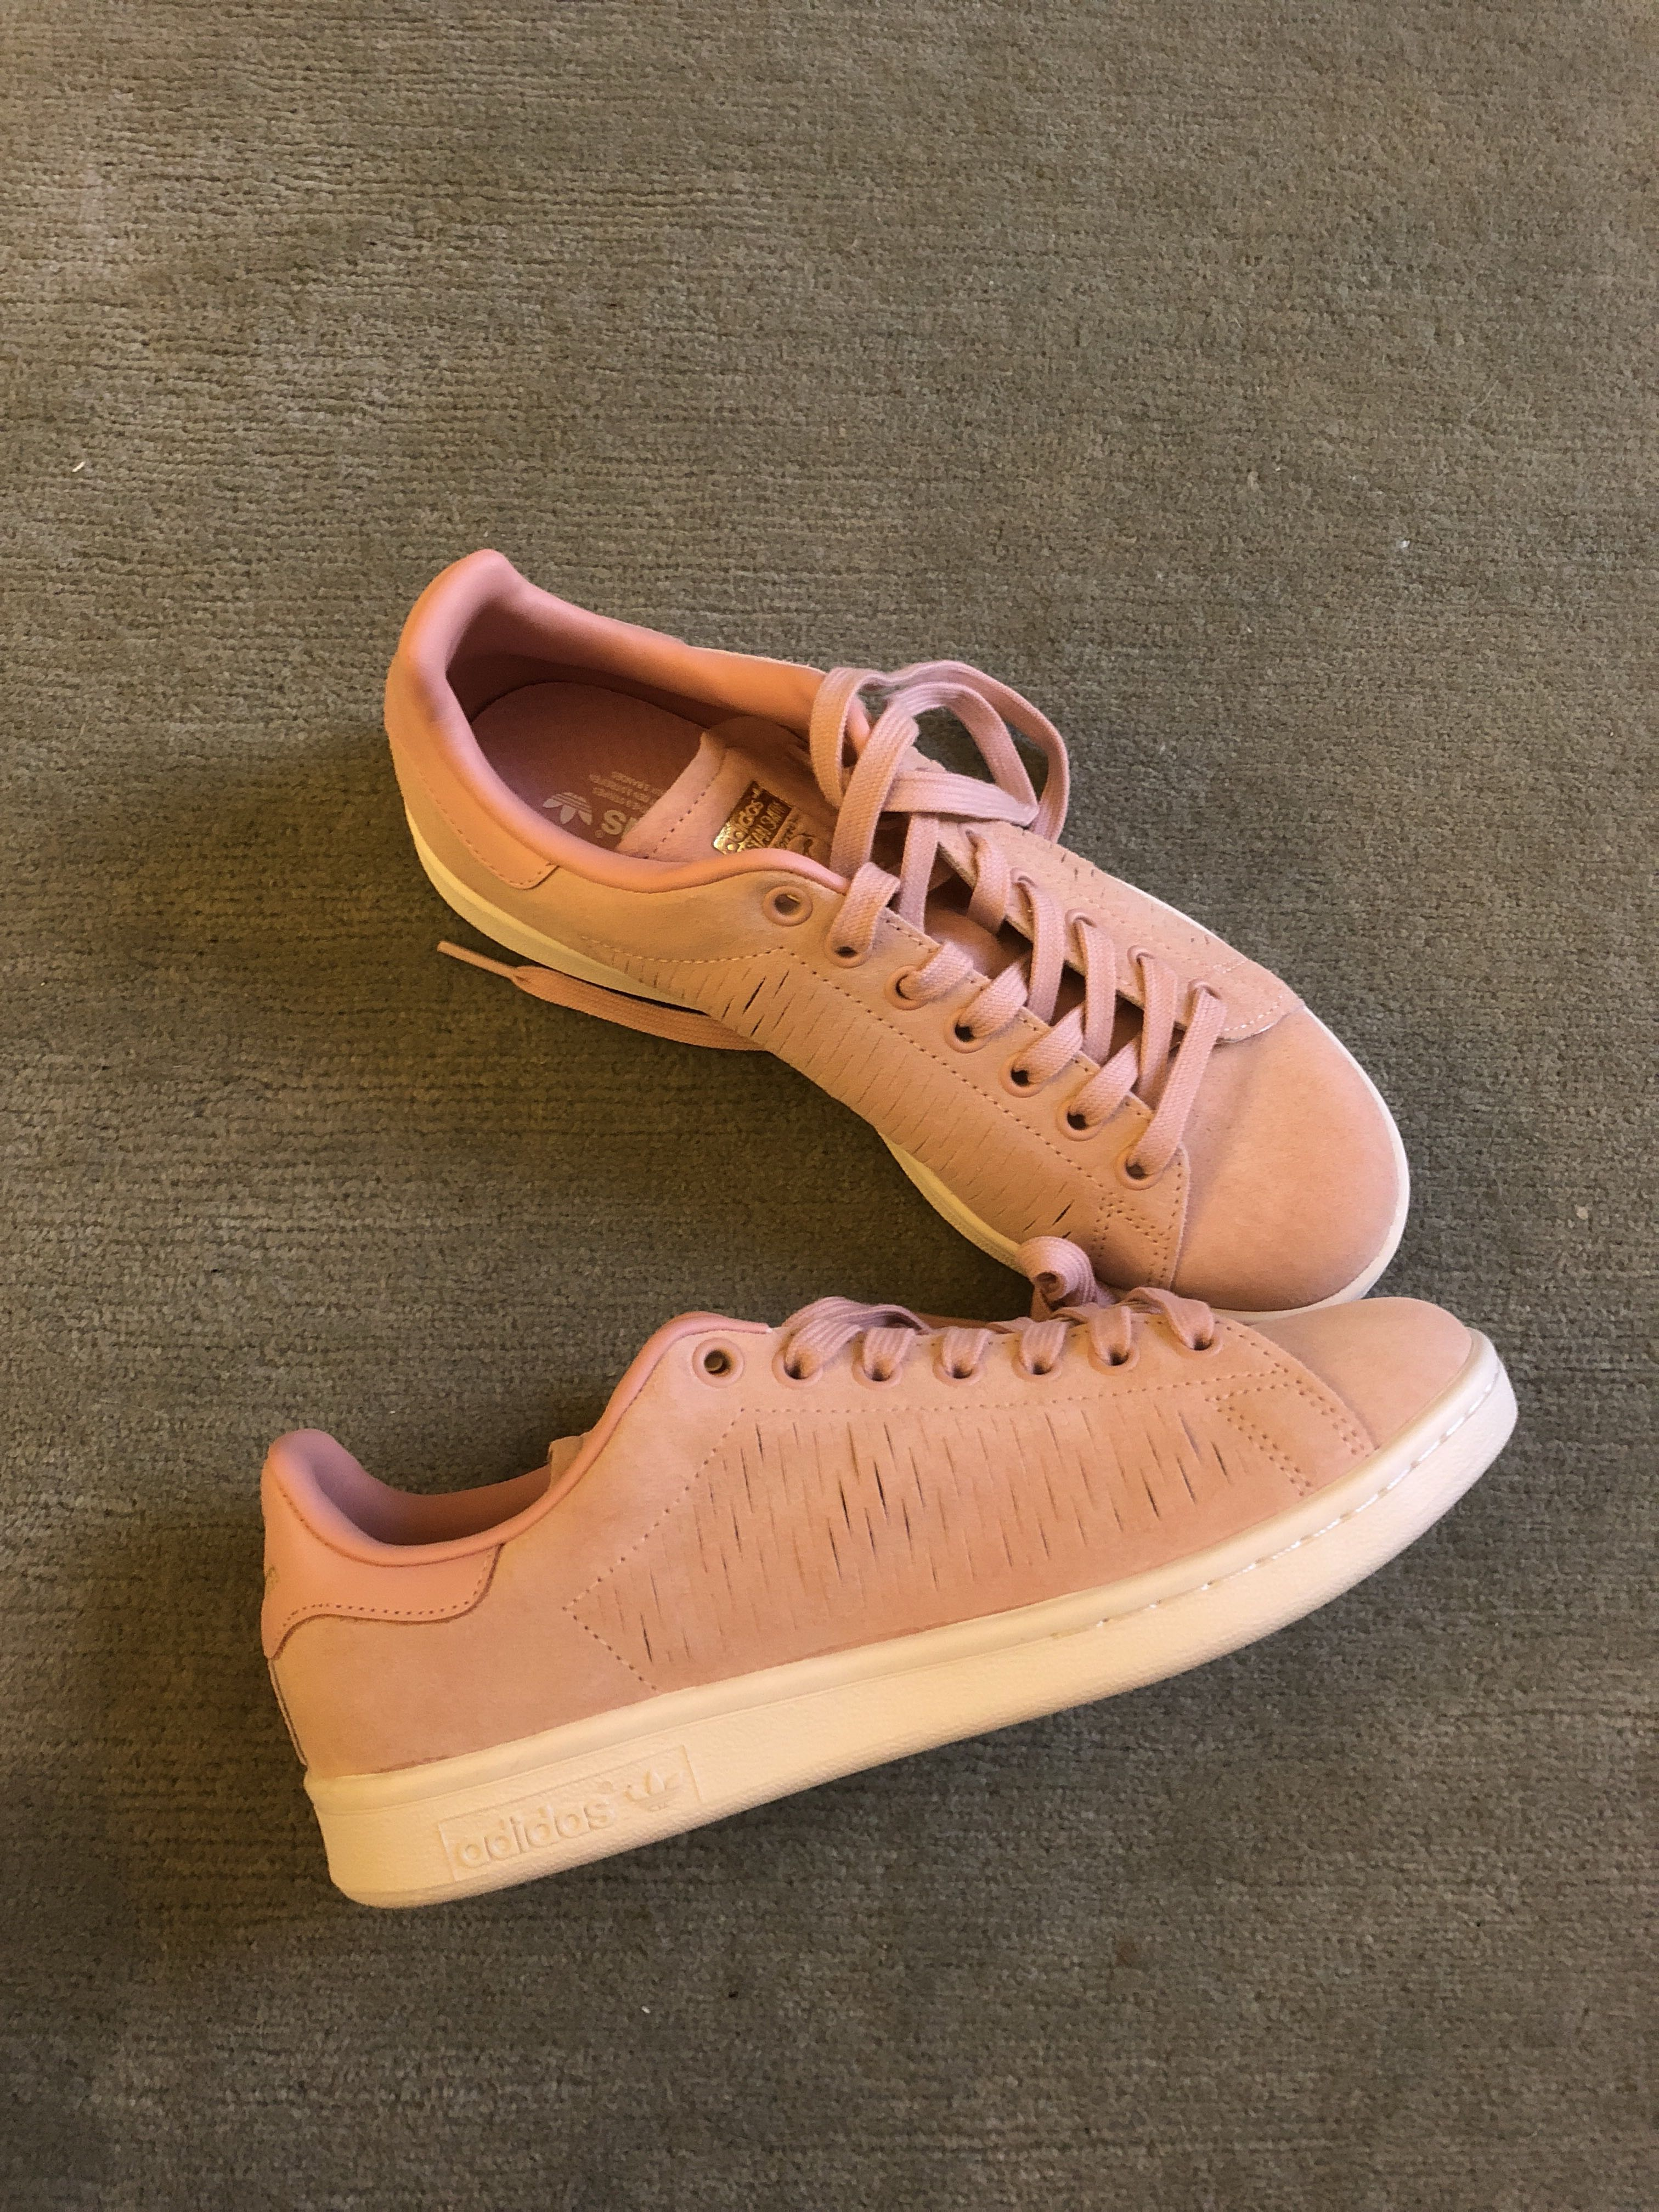 d94048bf9bebfb BN Adidas Stan Smith Pink Suede Uk5.5